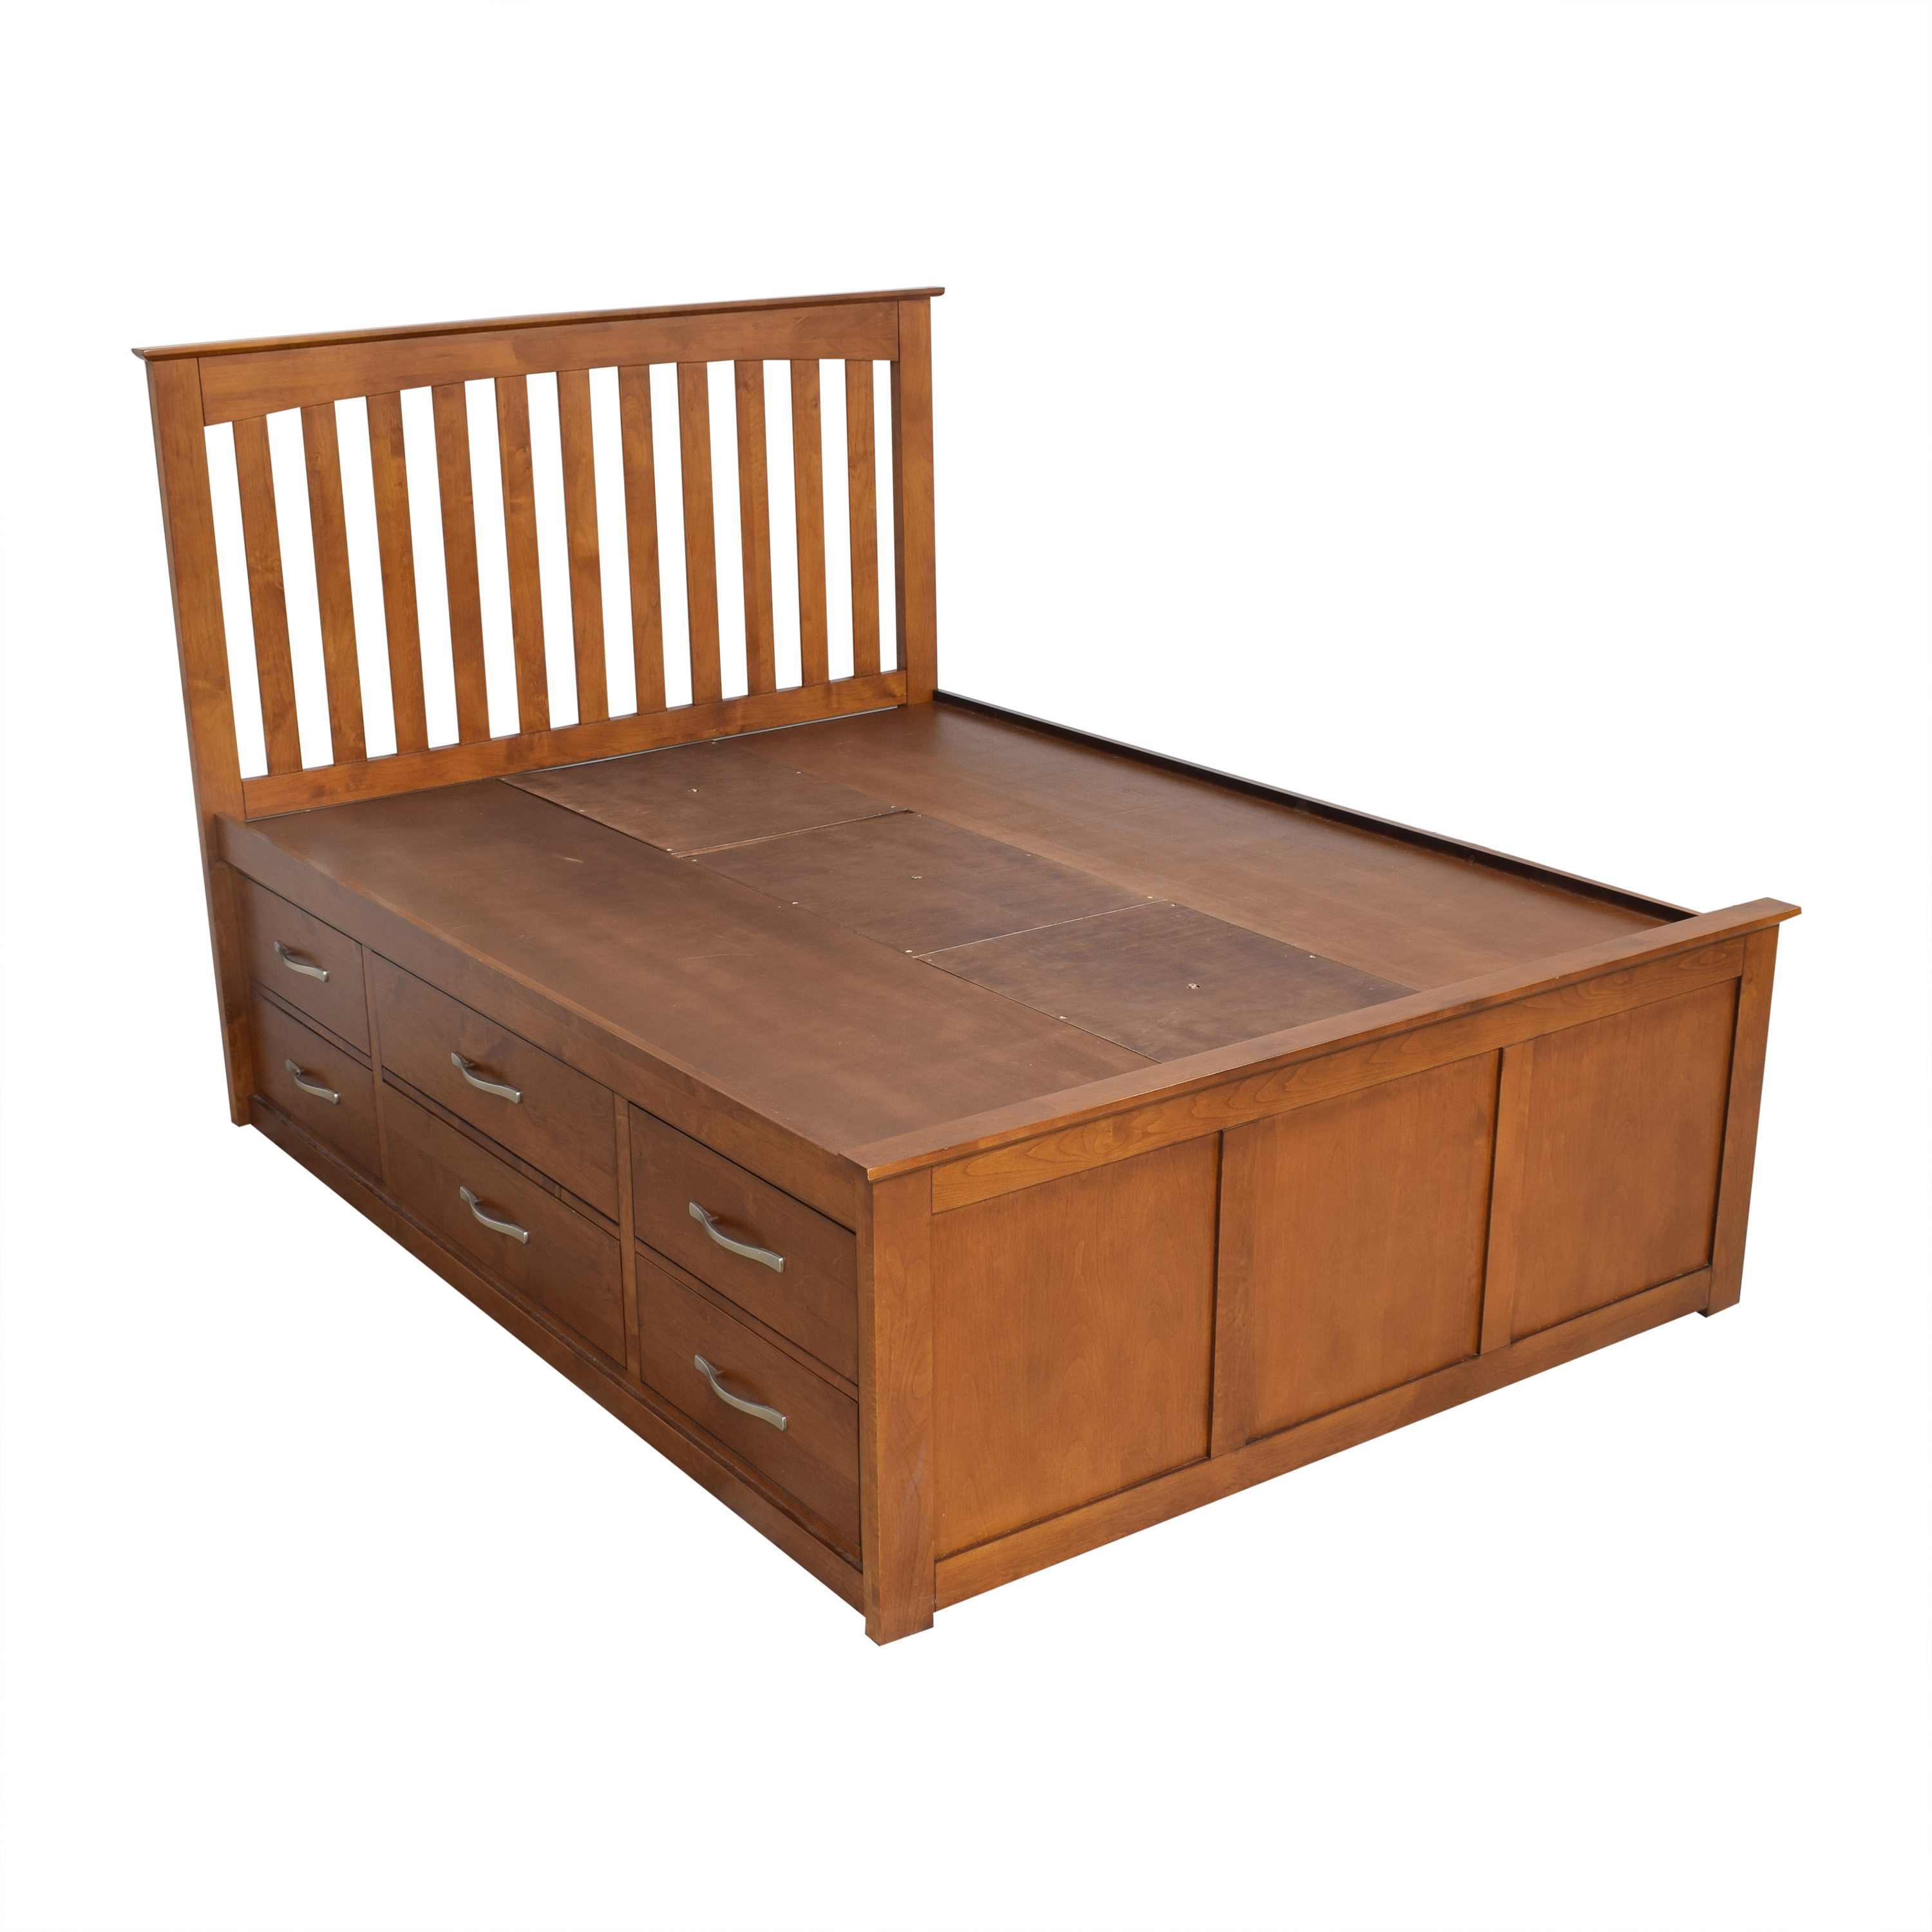 Raymour & Flanigan Raymour & Flanigan Everitt Queen Storage Bed nyc